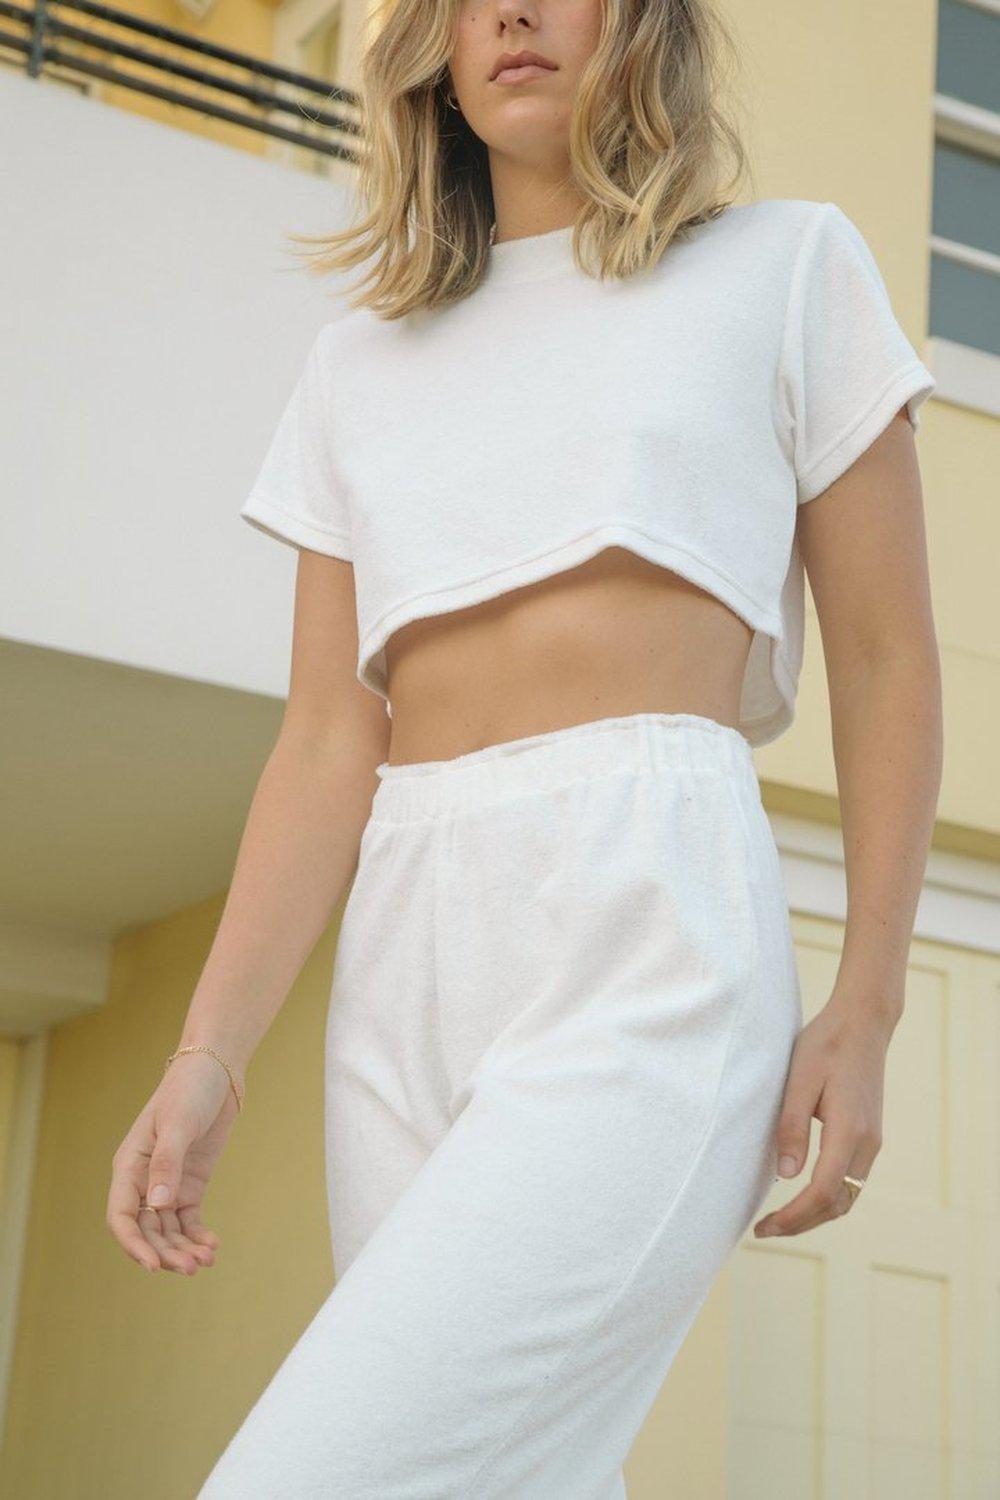 The Cropped Tee / White | Summi Summi | Mad About The Boy